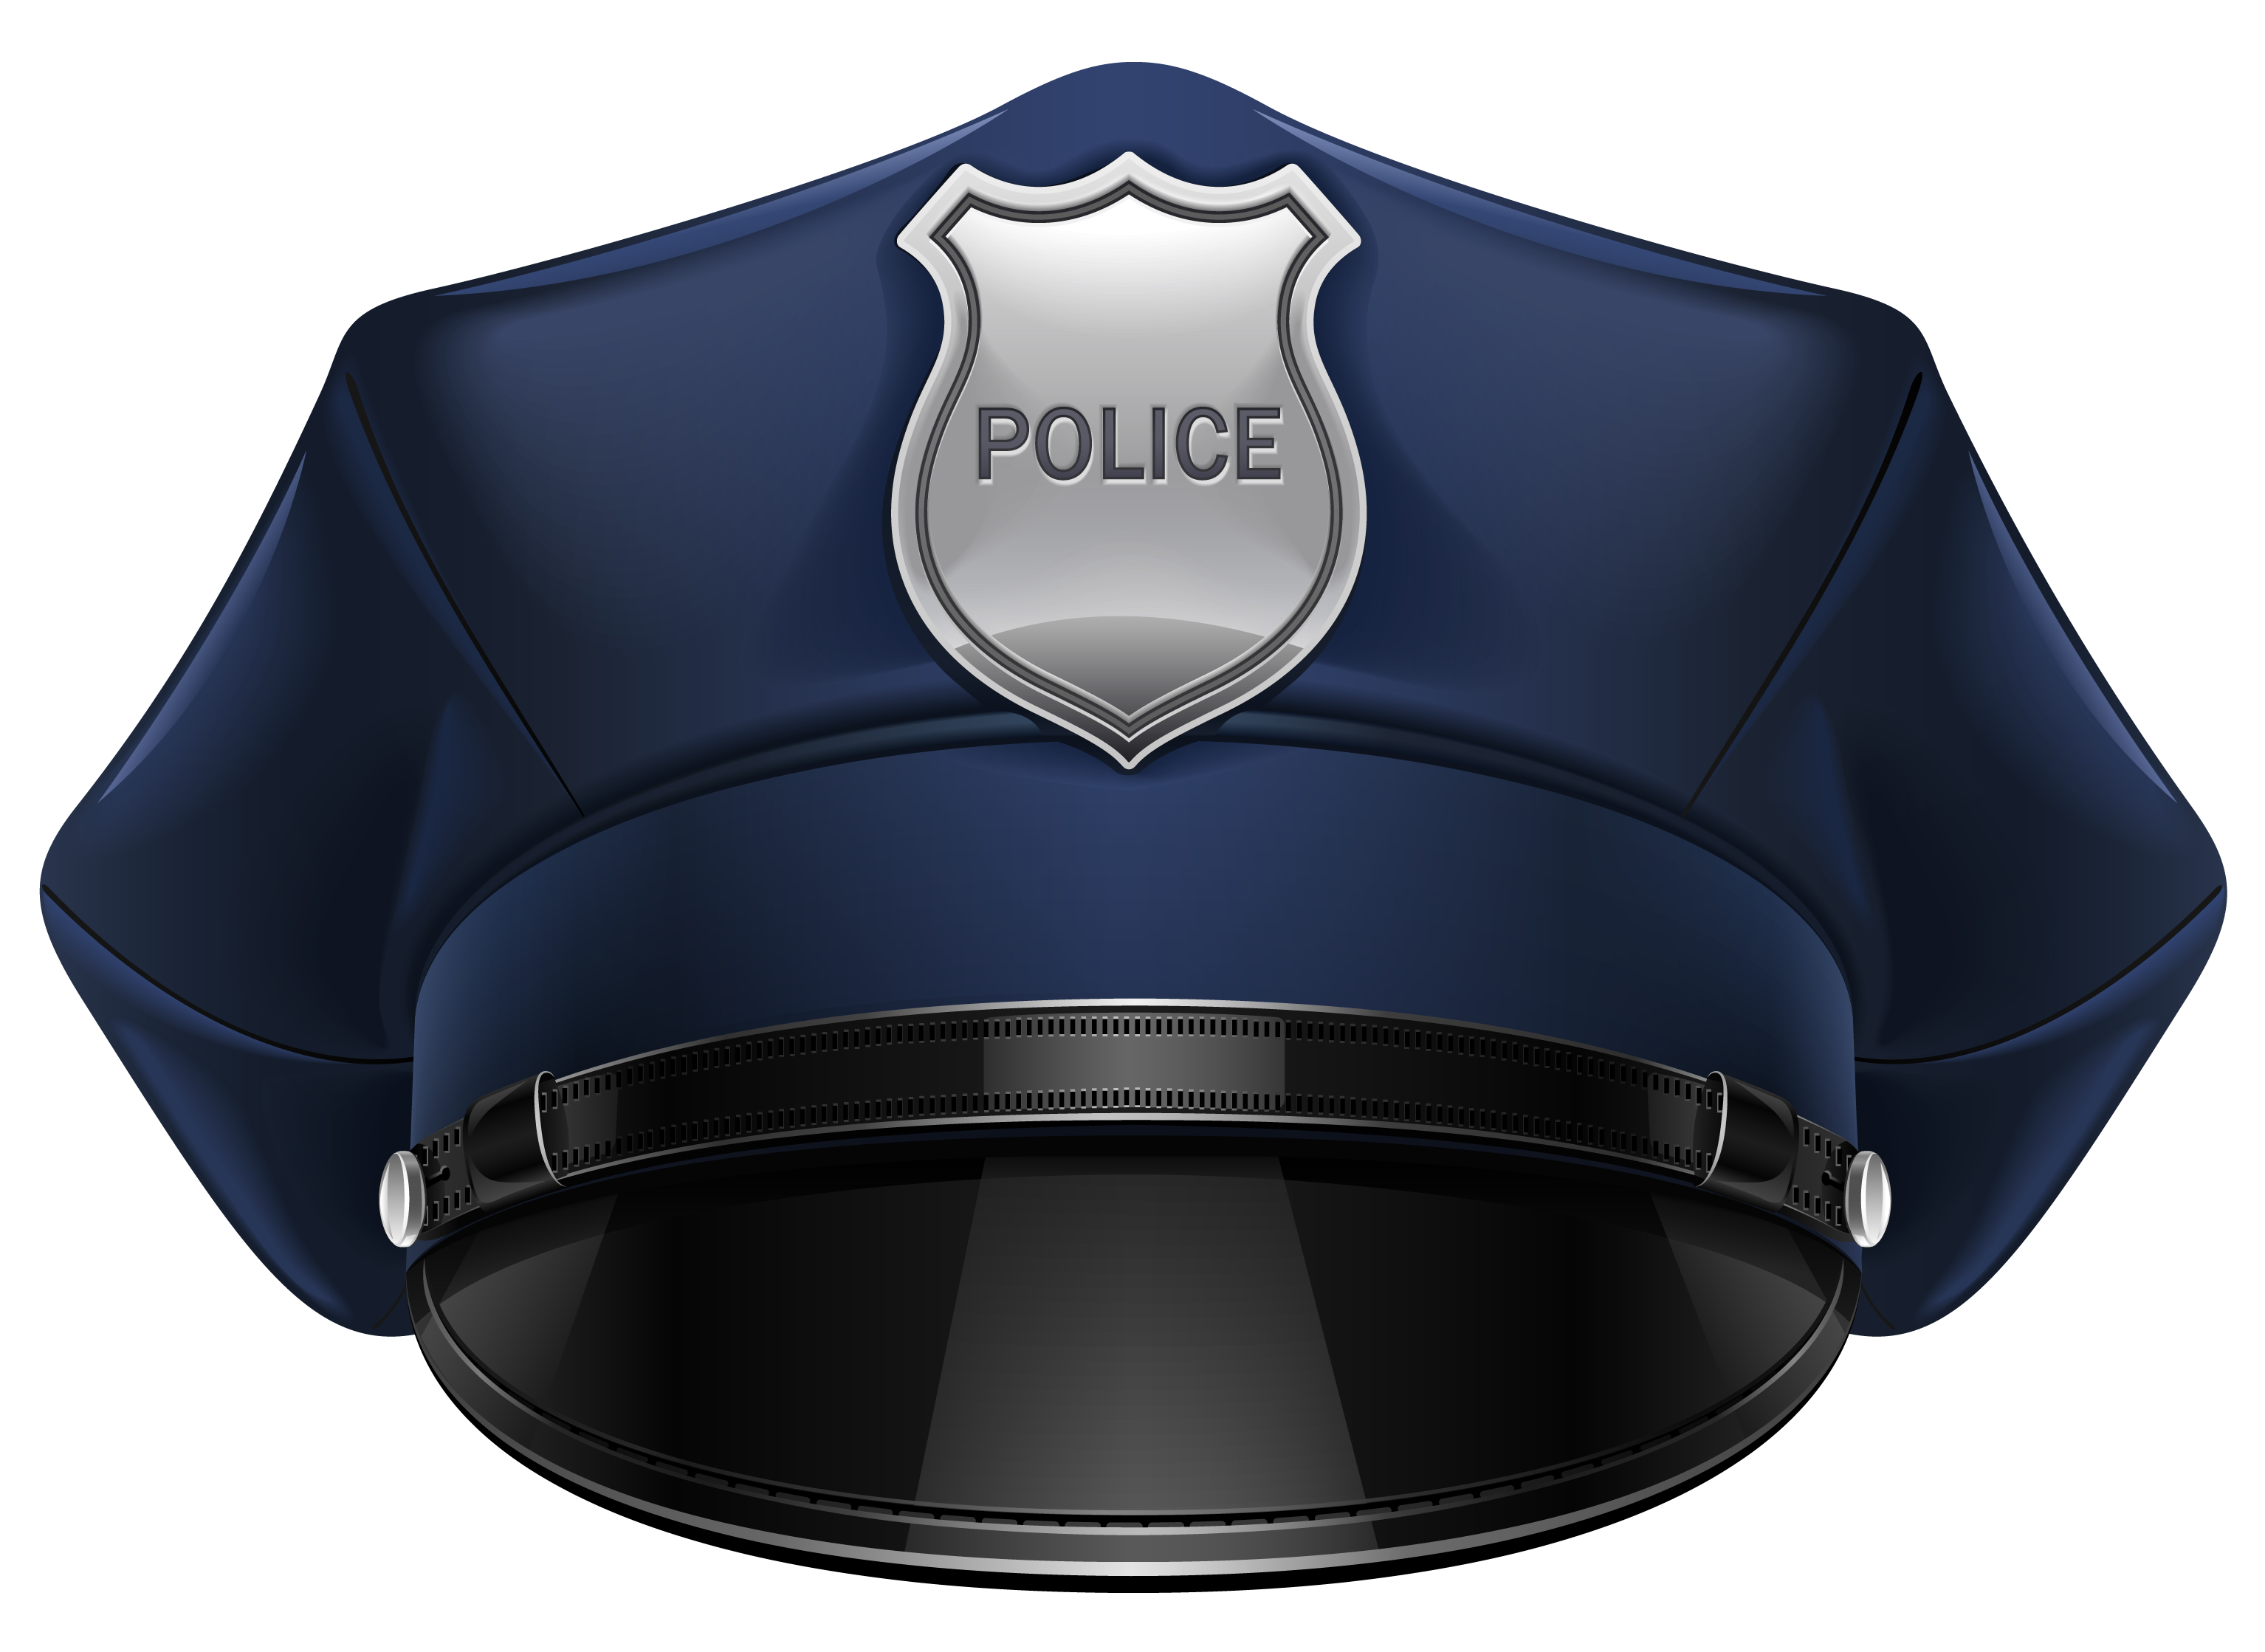 3068x2238 Police Hat Png Clipart Police Clipart Gallery And Free